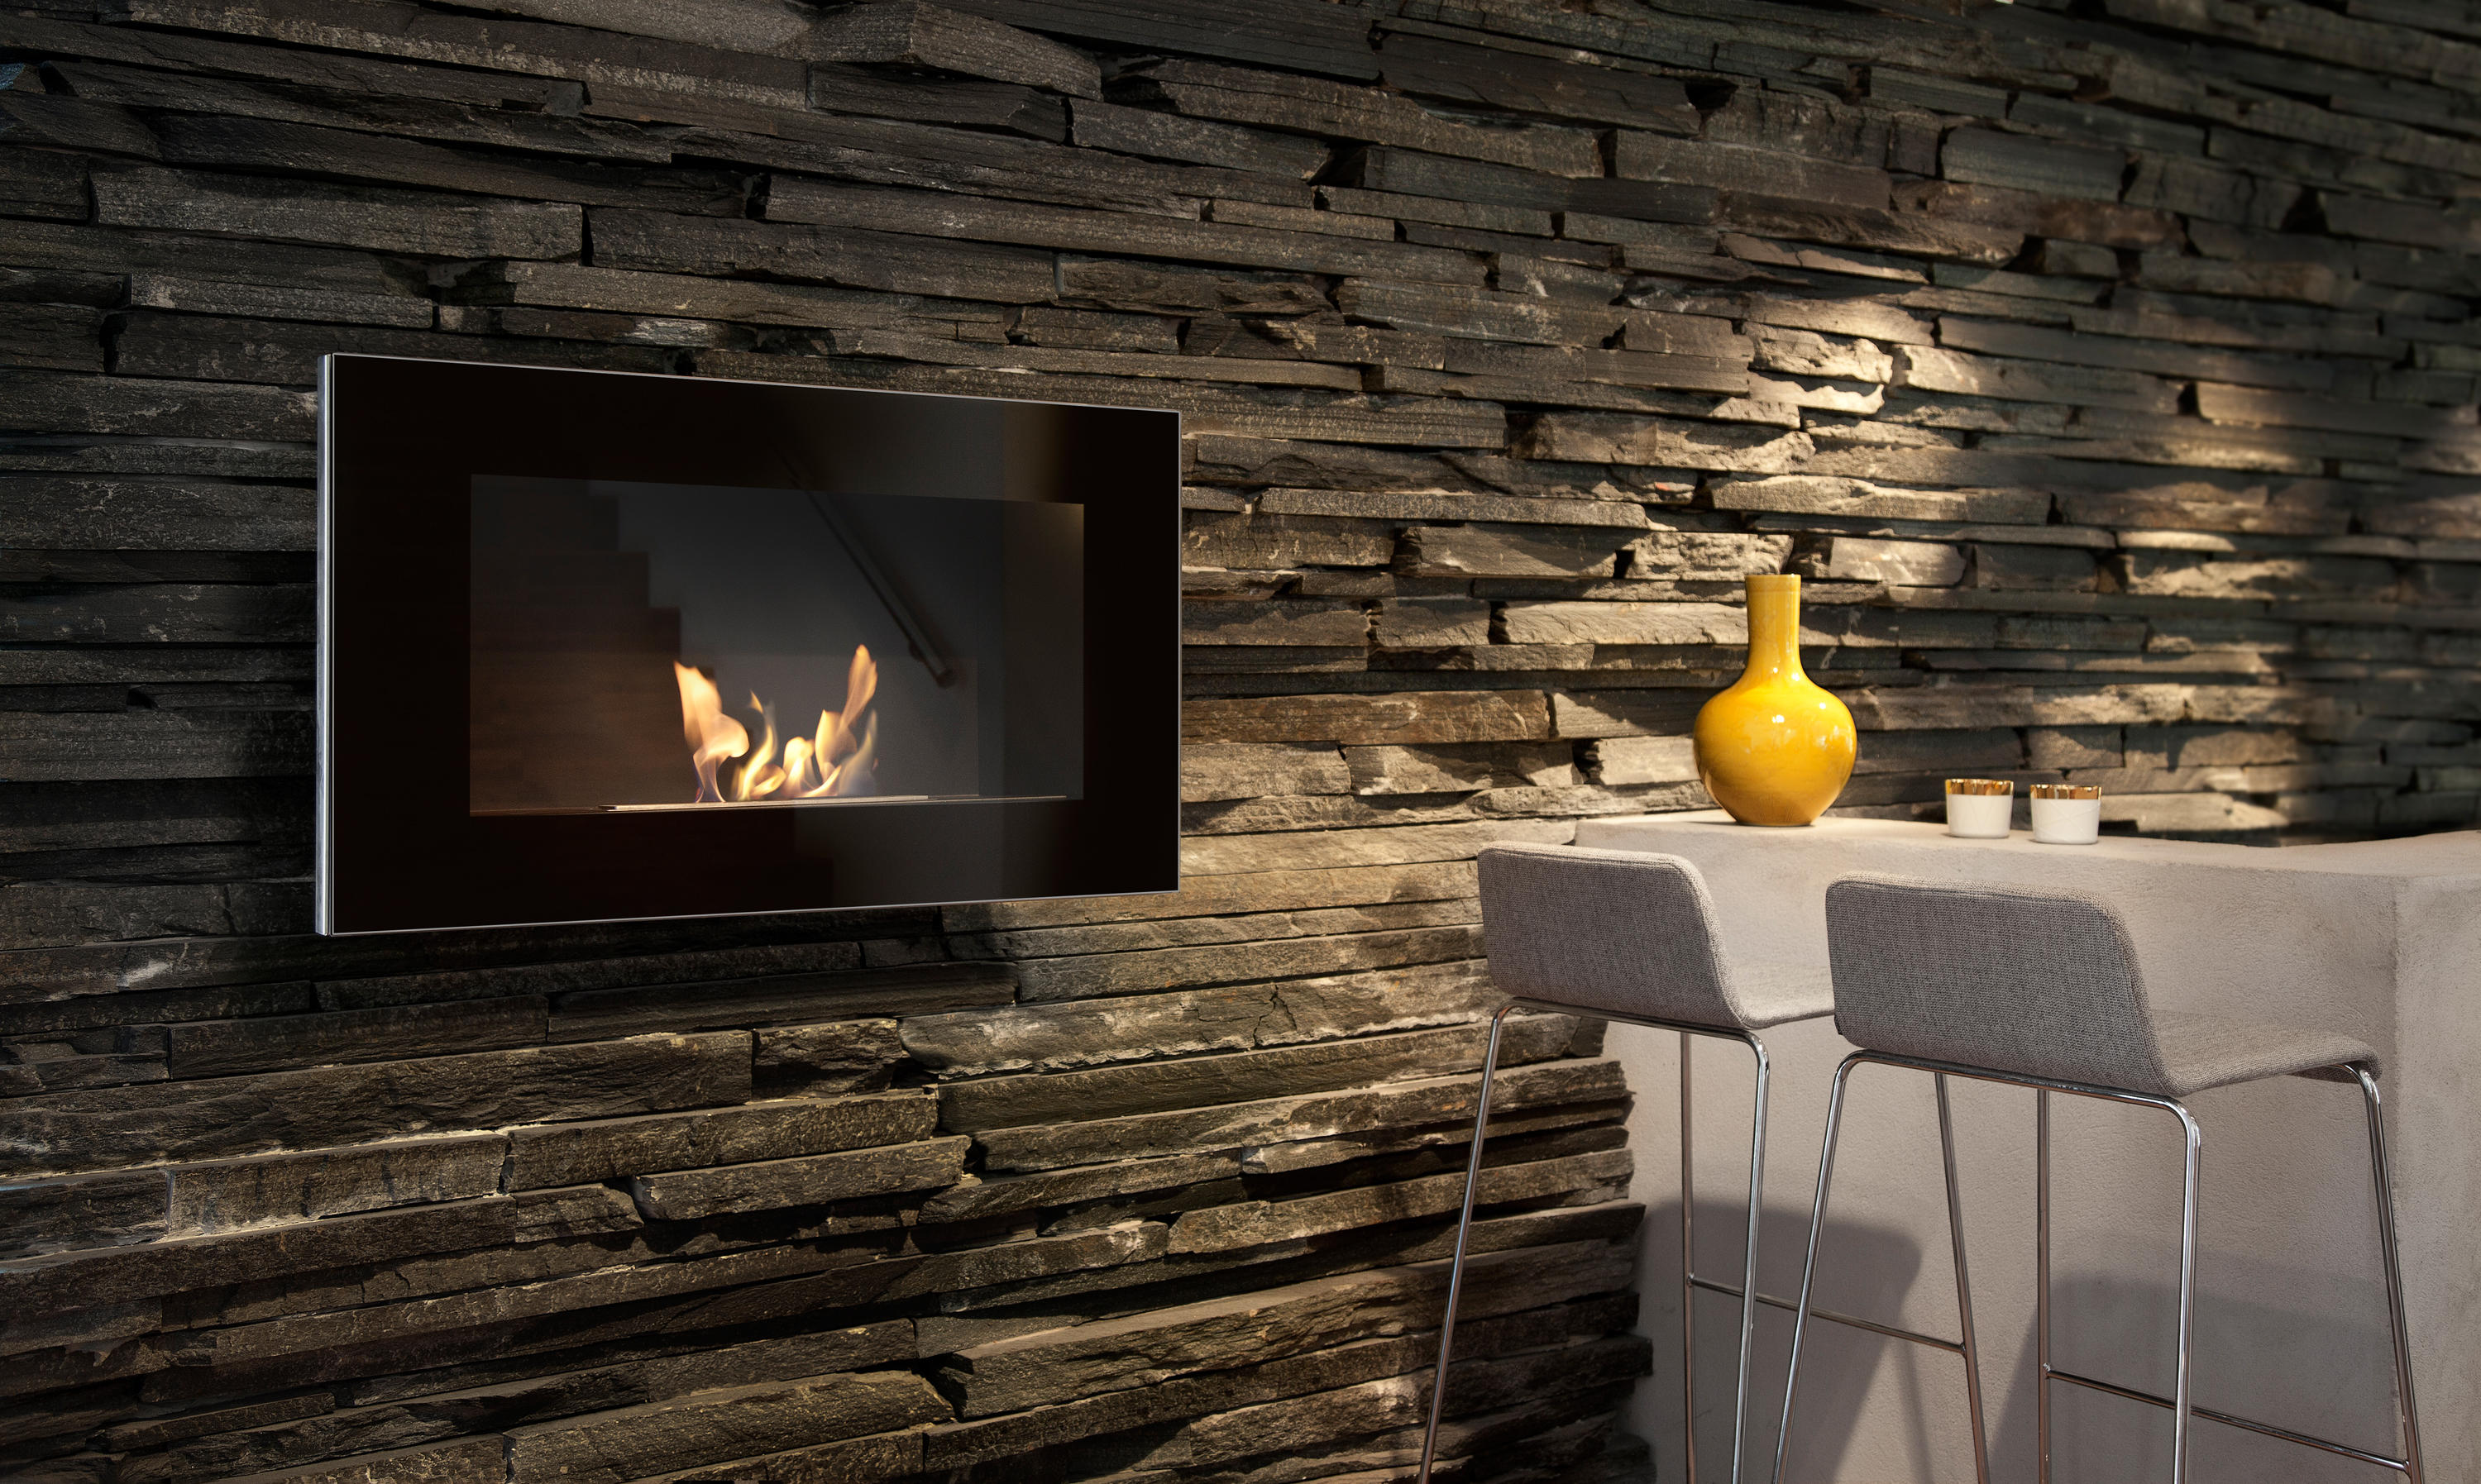 wall mounted electric fireplace from fire sense